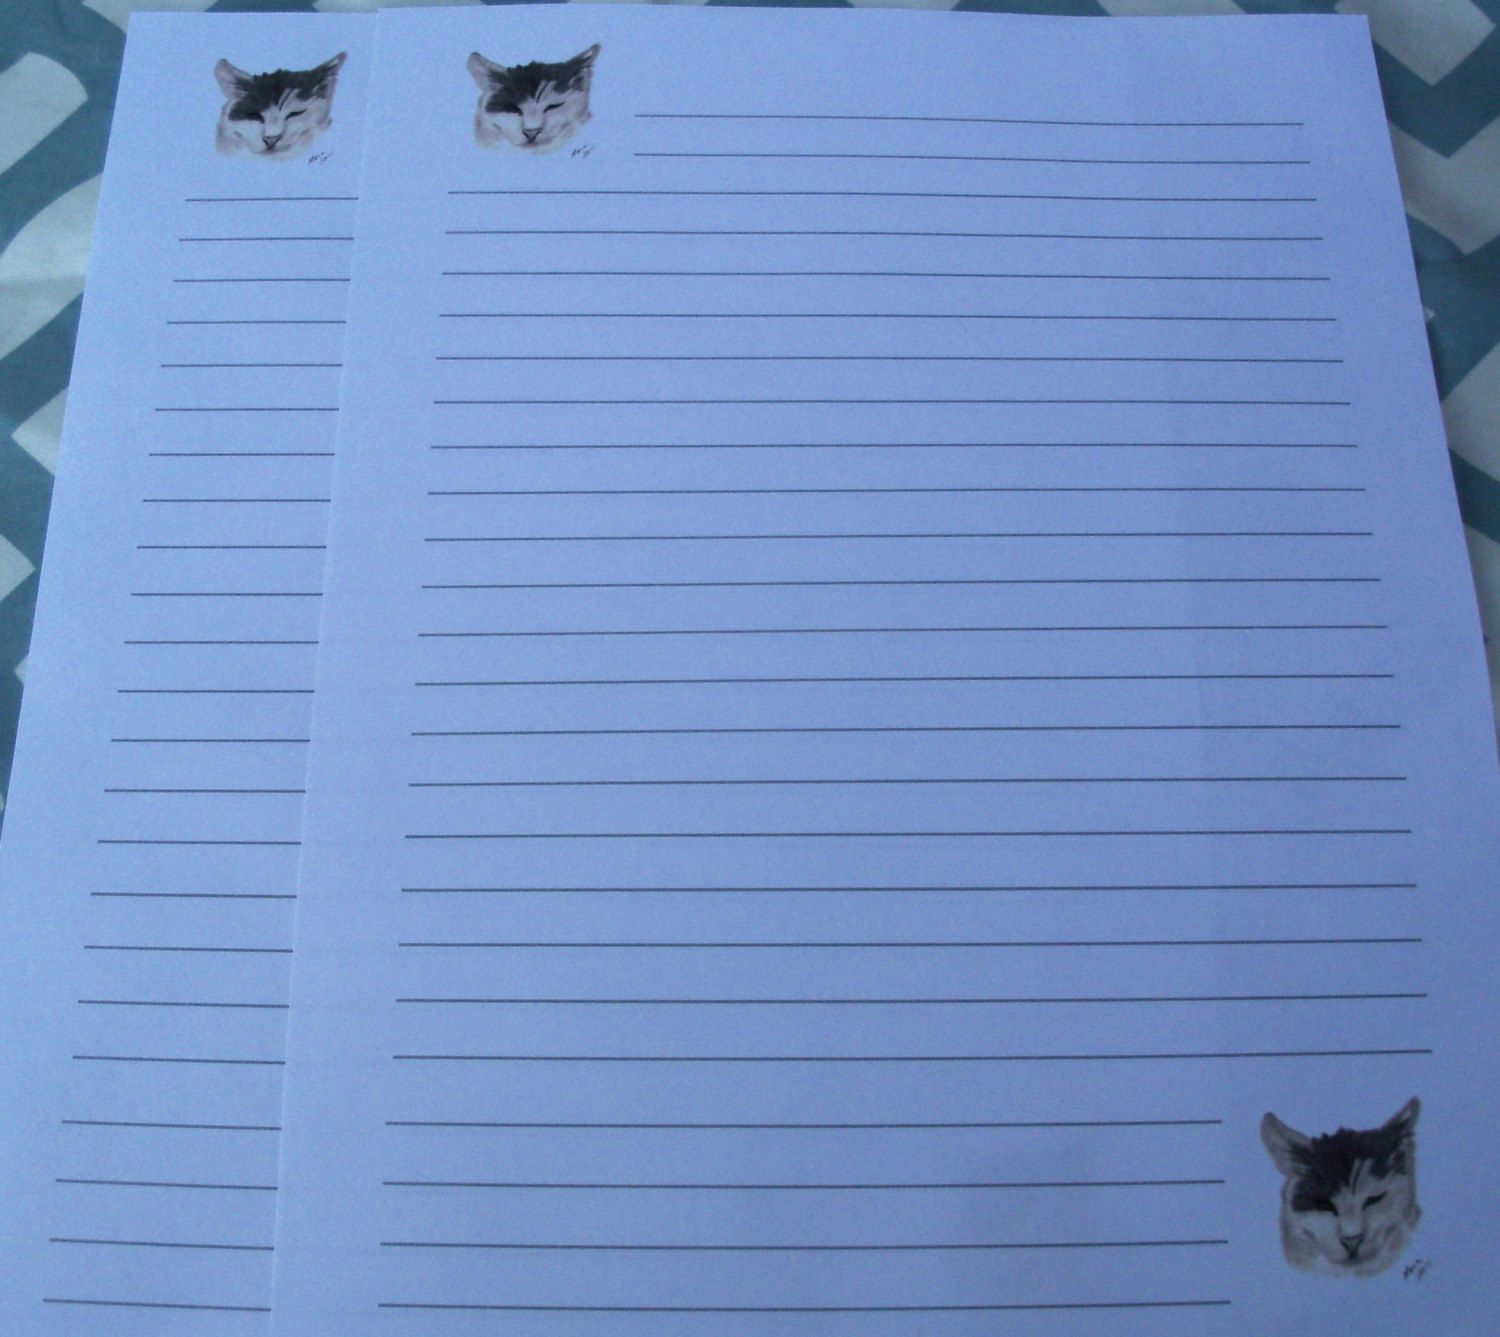 Paper Lined Stationery Letter Sheets 20 Piece  Cat Stationery Sheets Lined .